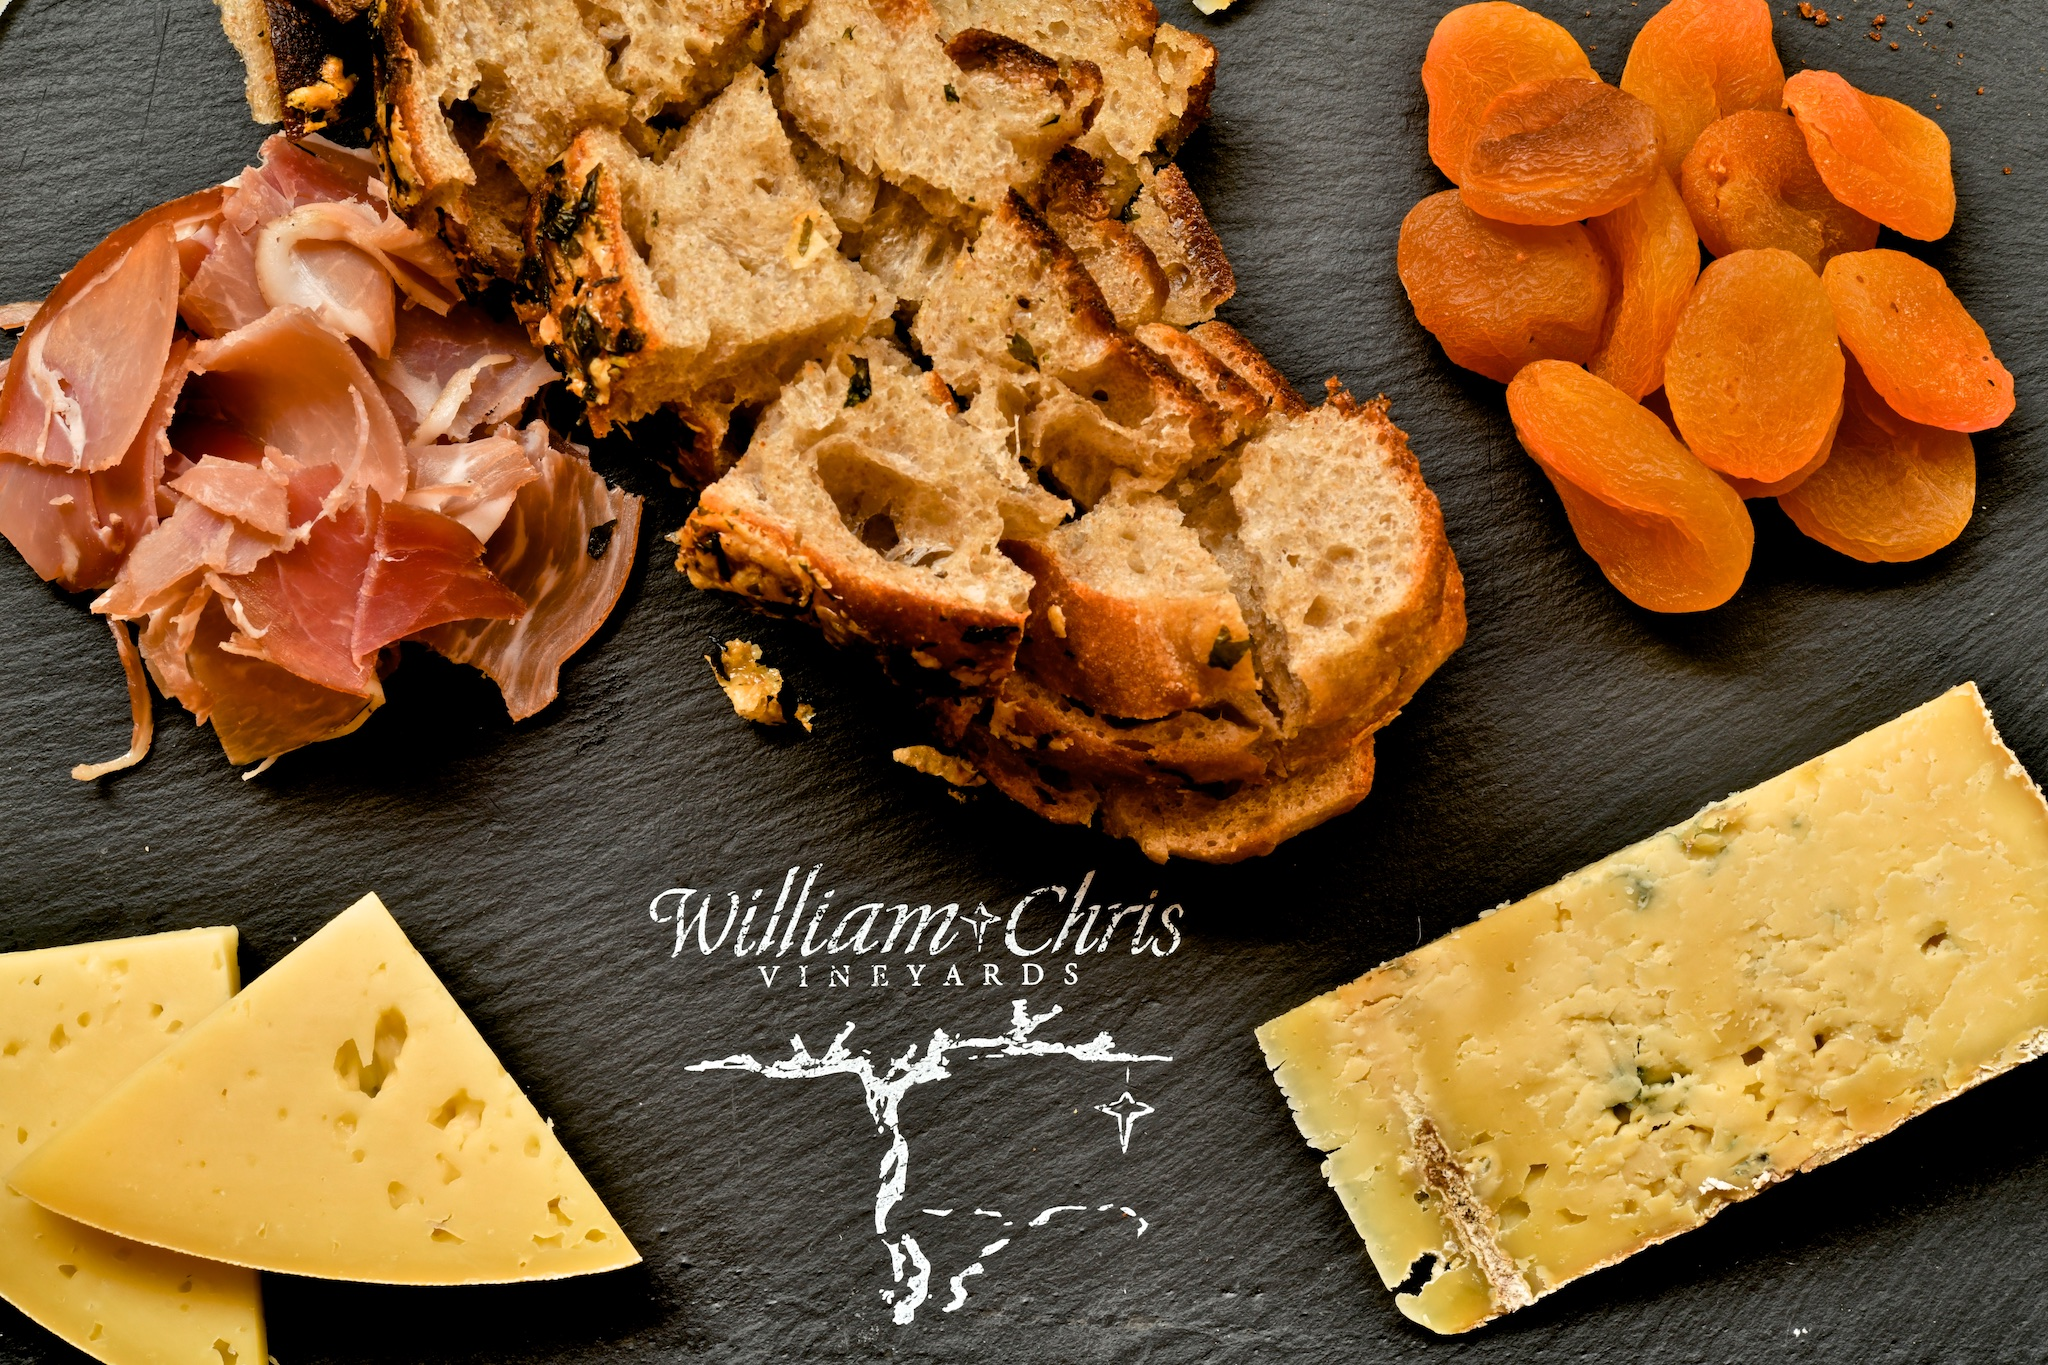 Food and Wine at William Chris Vineyards